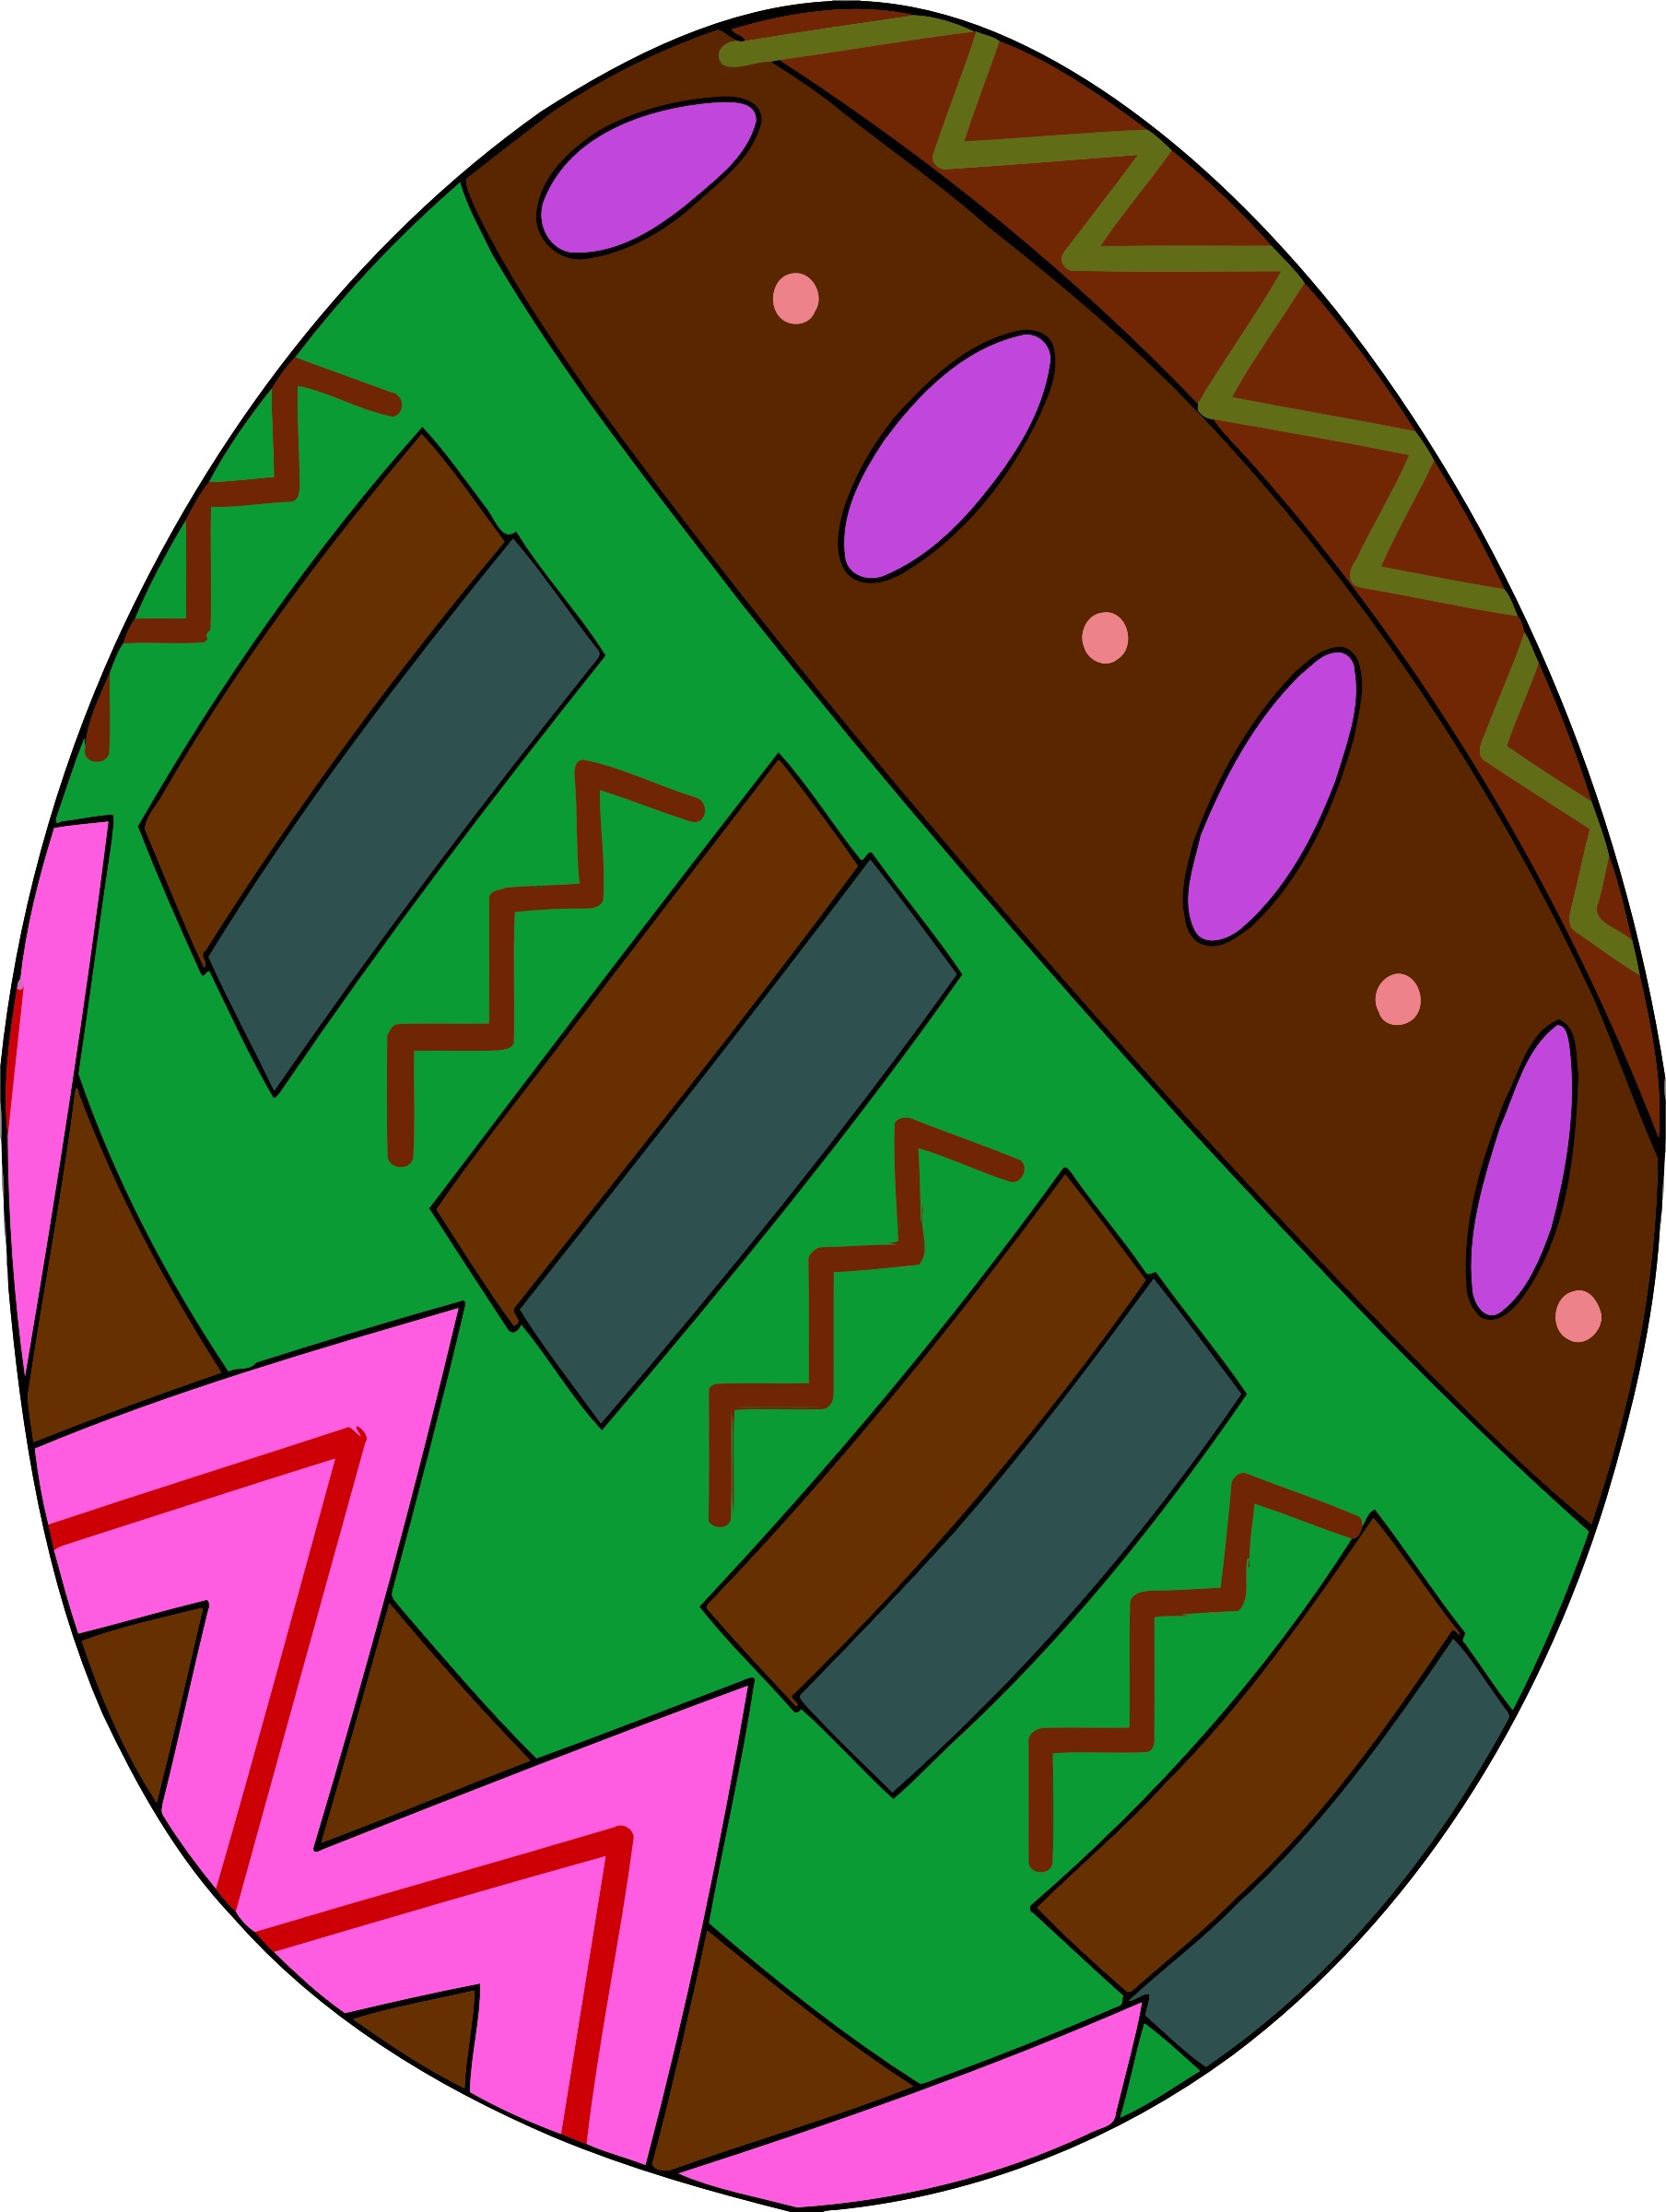 Decorative egg 7 by Firkin